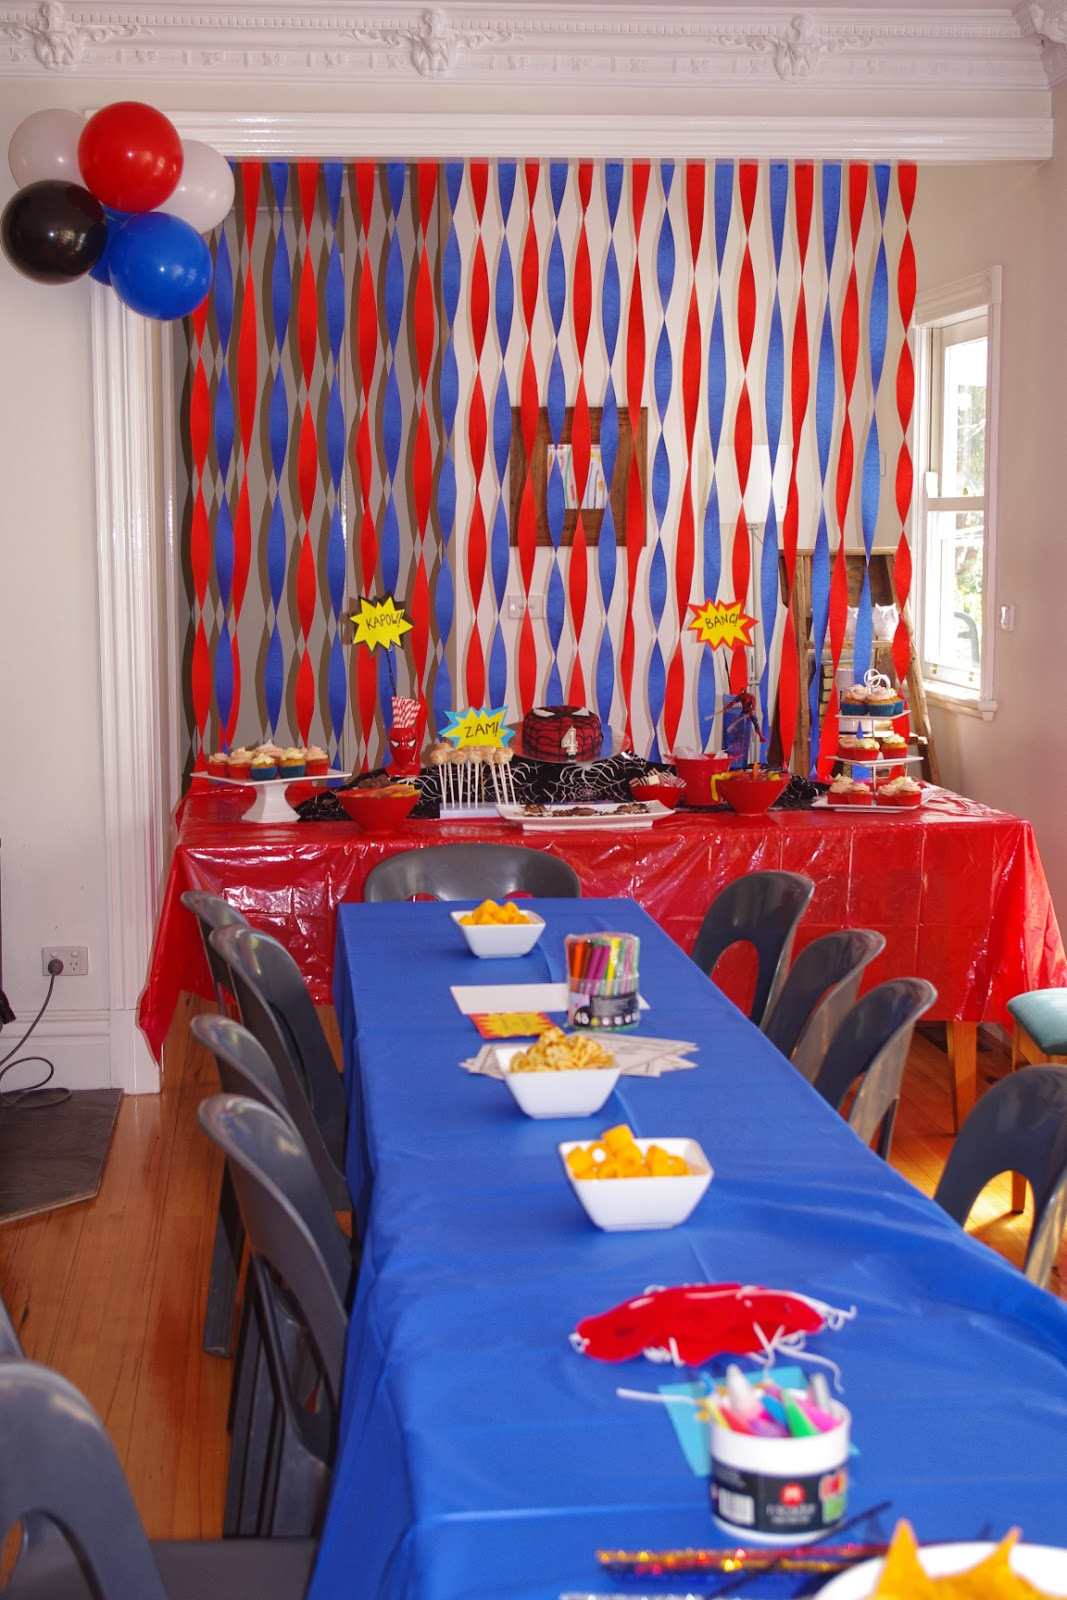 The noatbook spider man party on a budget for Spiderman decorations